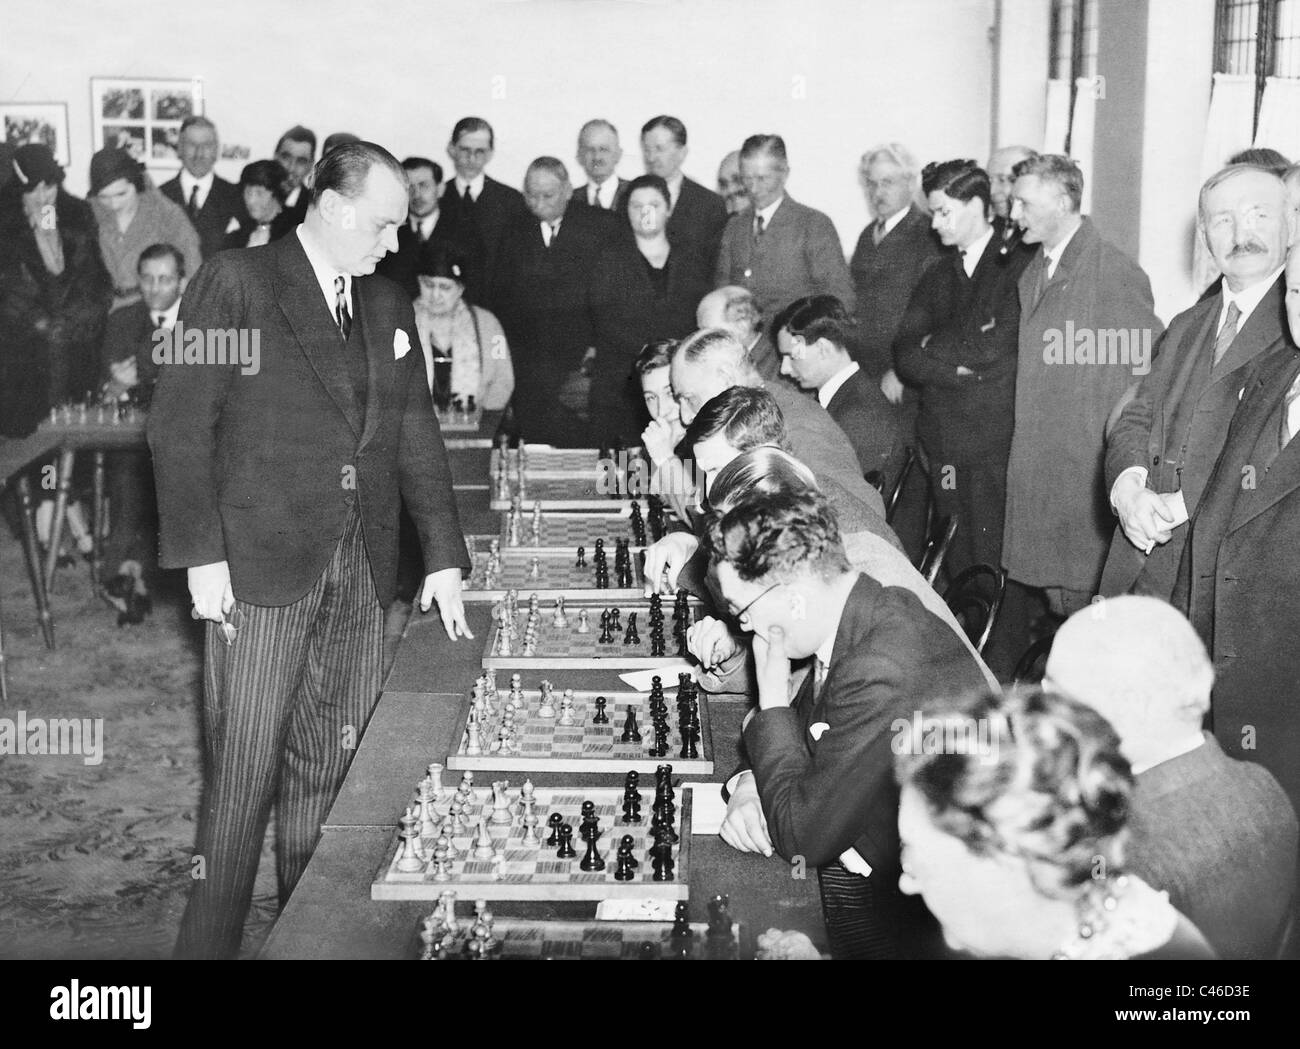 Alexander Alekhine playing simultaneous chess matches in Bayswater, 1932 - Stock Image